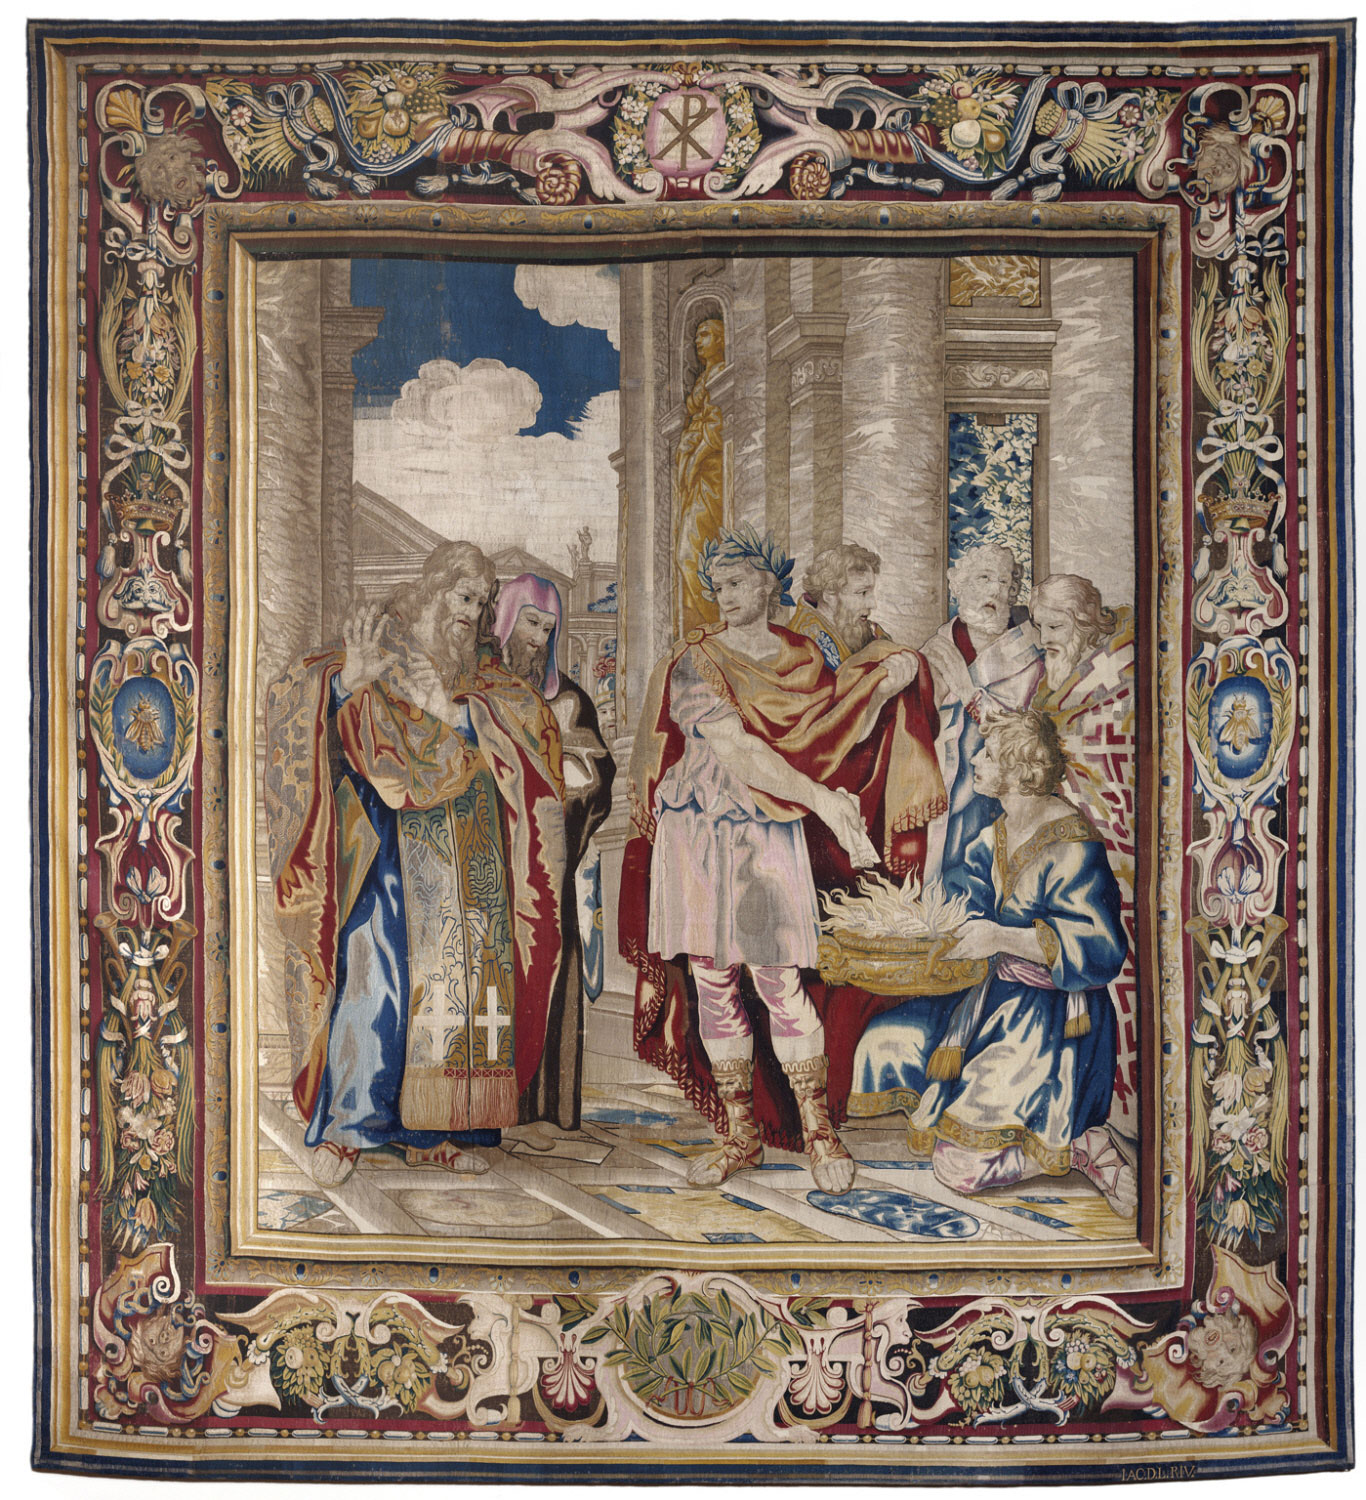 Tapestry showing Constantine Burning the Memorials to Give Tax Concessions to the Christian Church